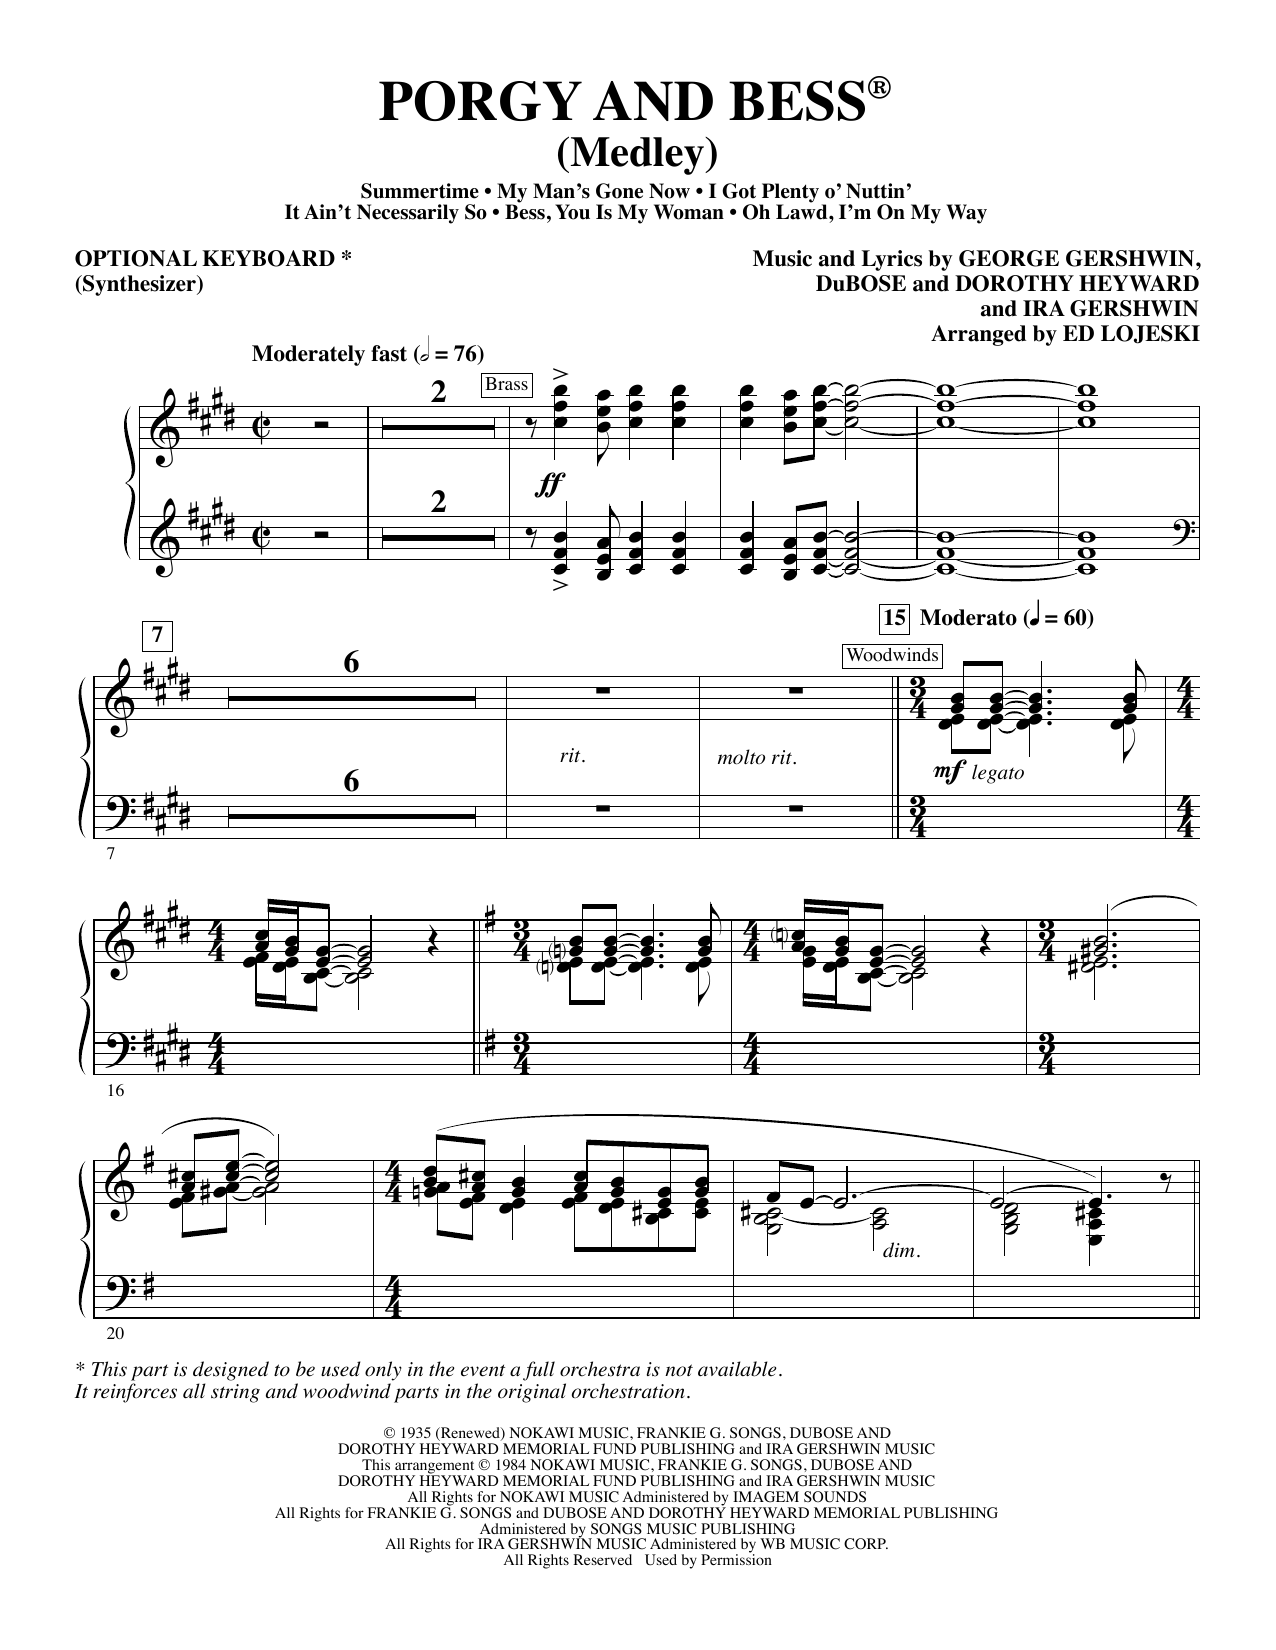 Porgy and Bess (Medley) - Synthesizer (opt.) Sheet Music